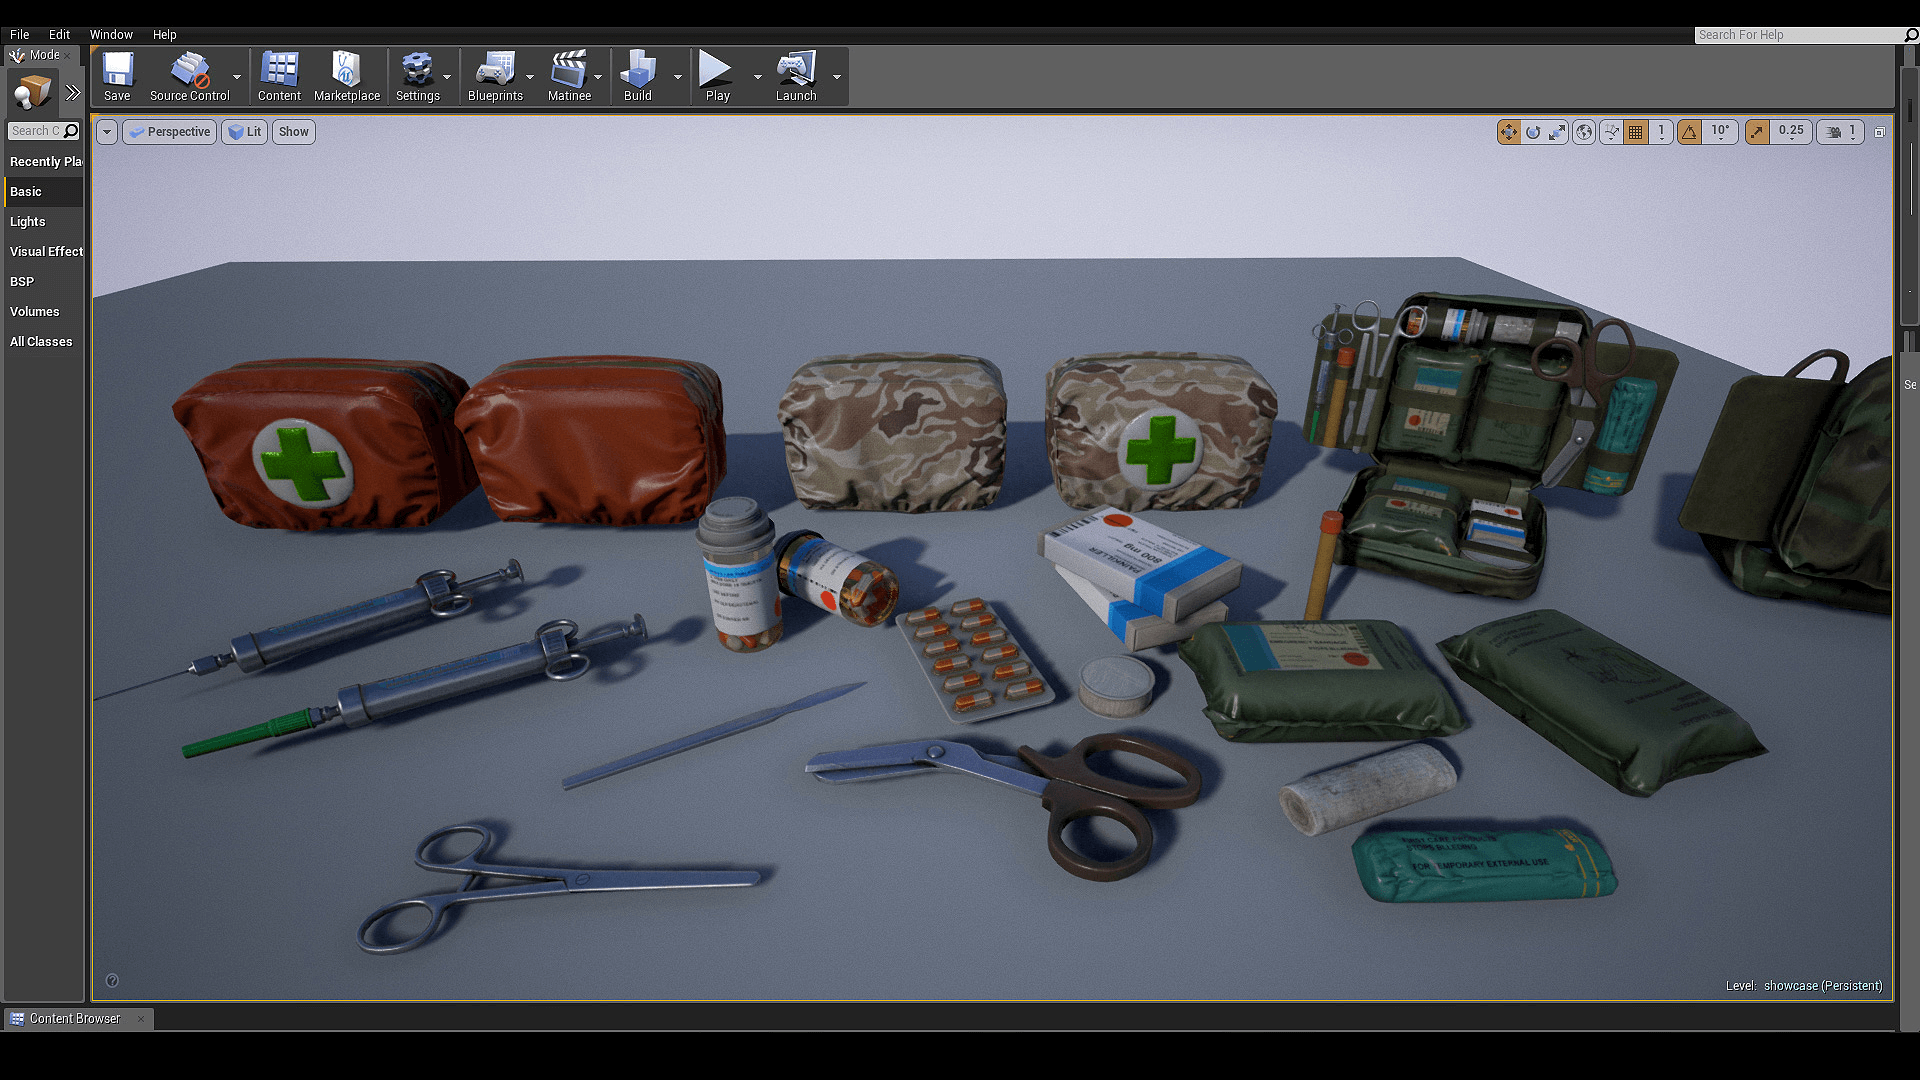 First Aid Set by Alexander Ponomarev in Props - UE4 ...